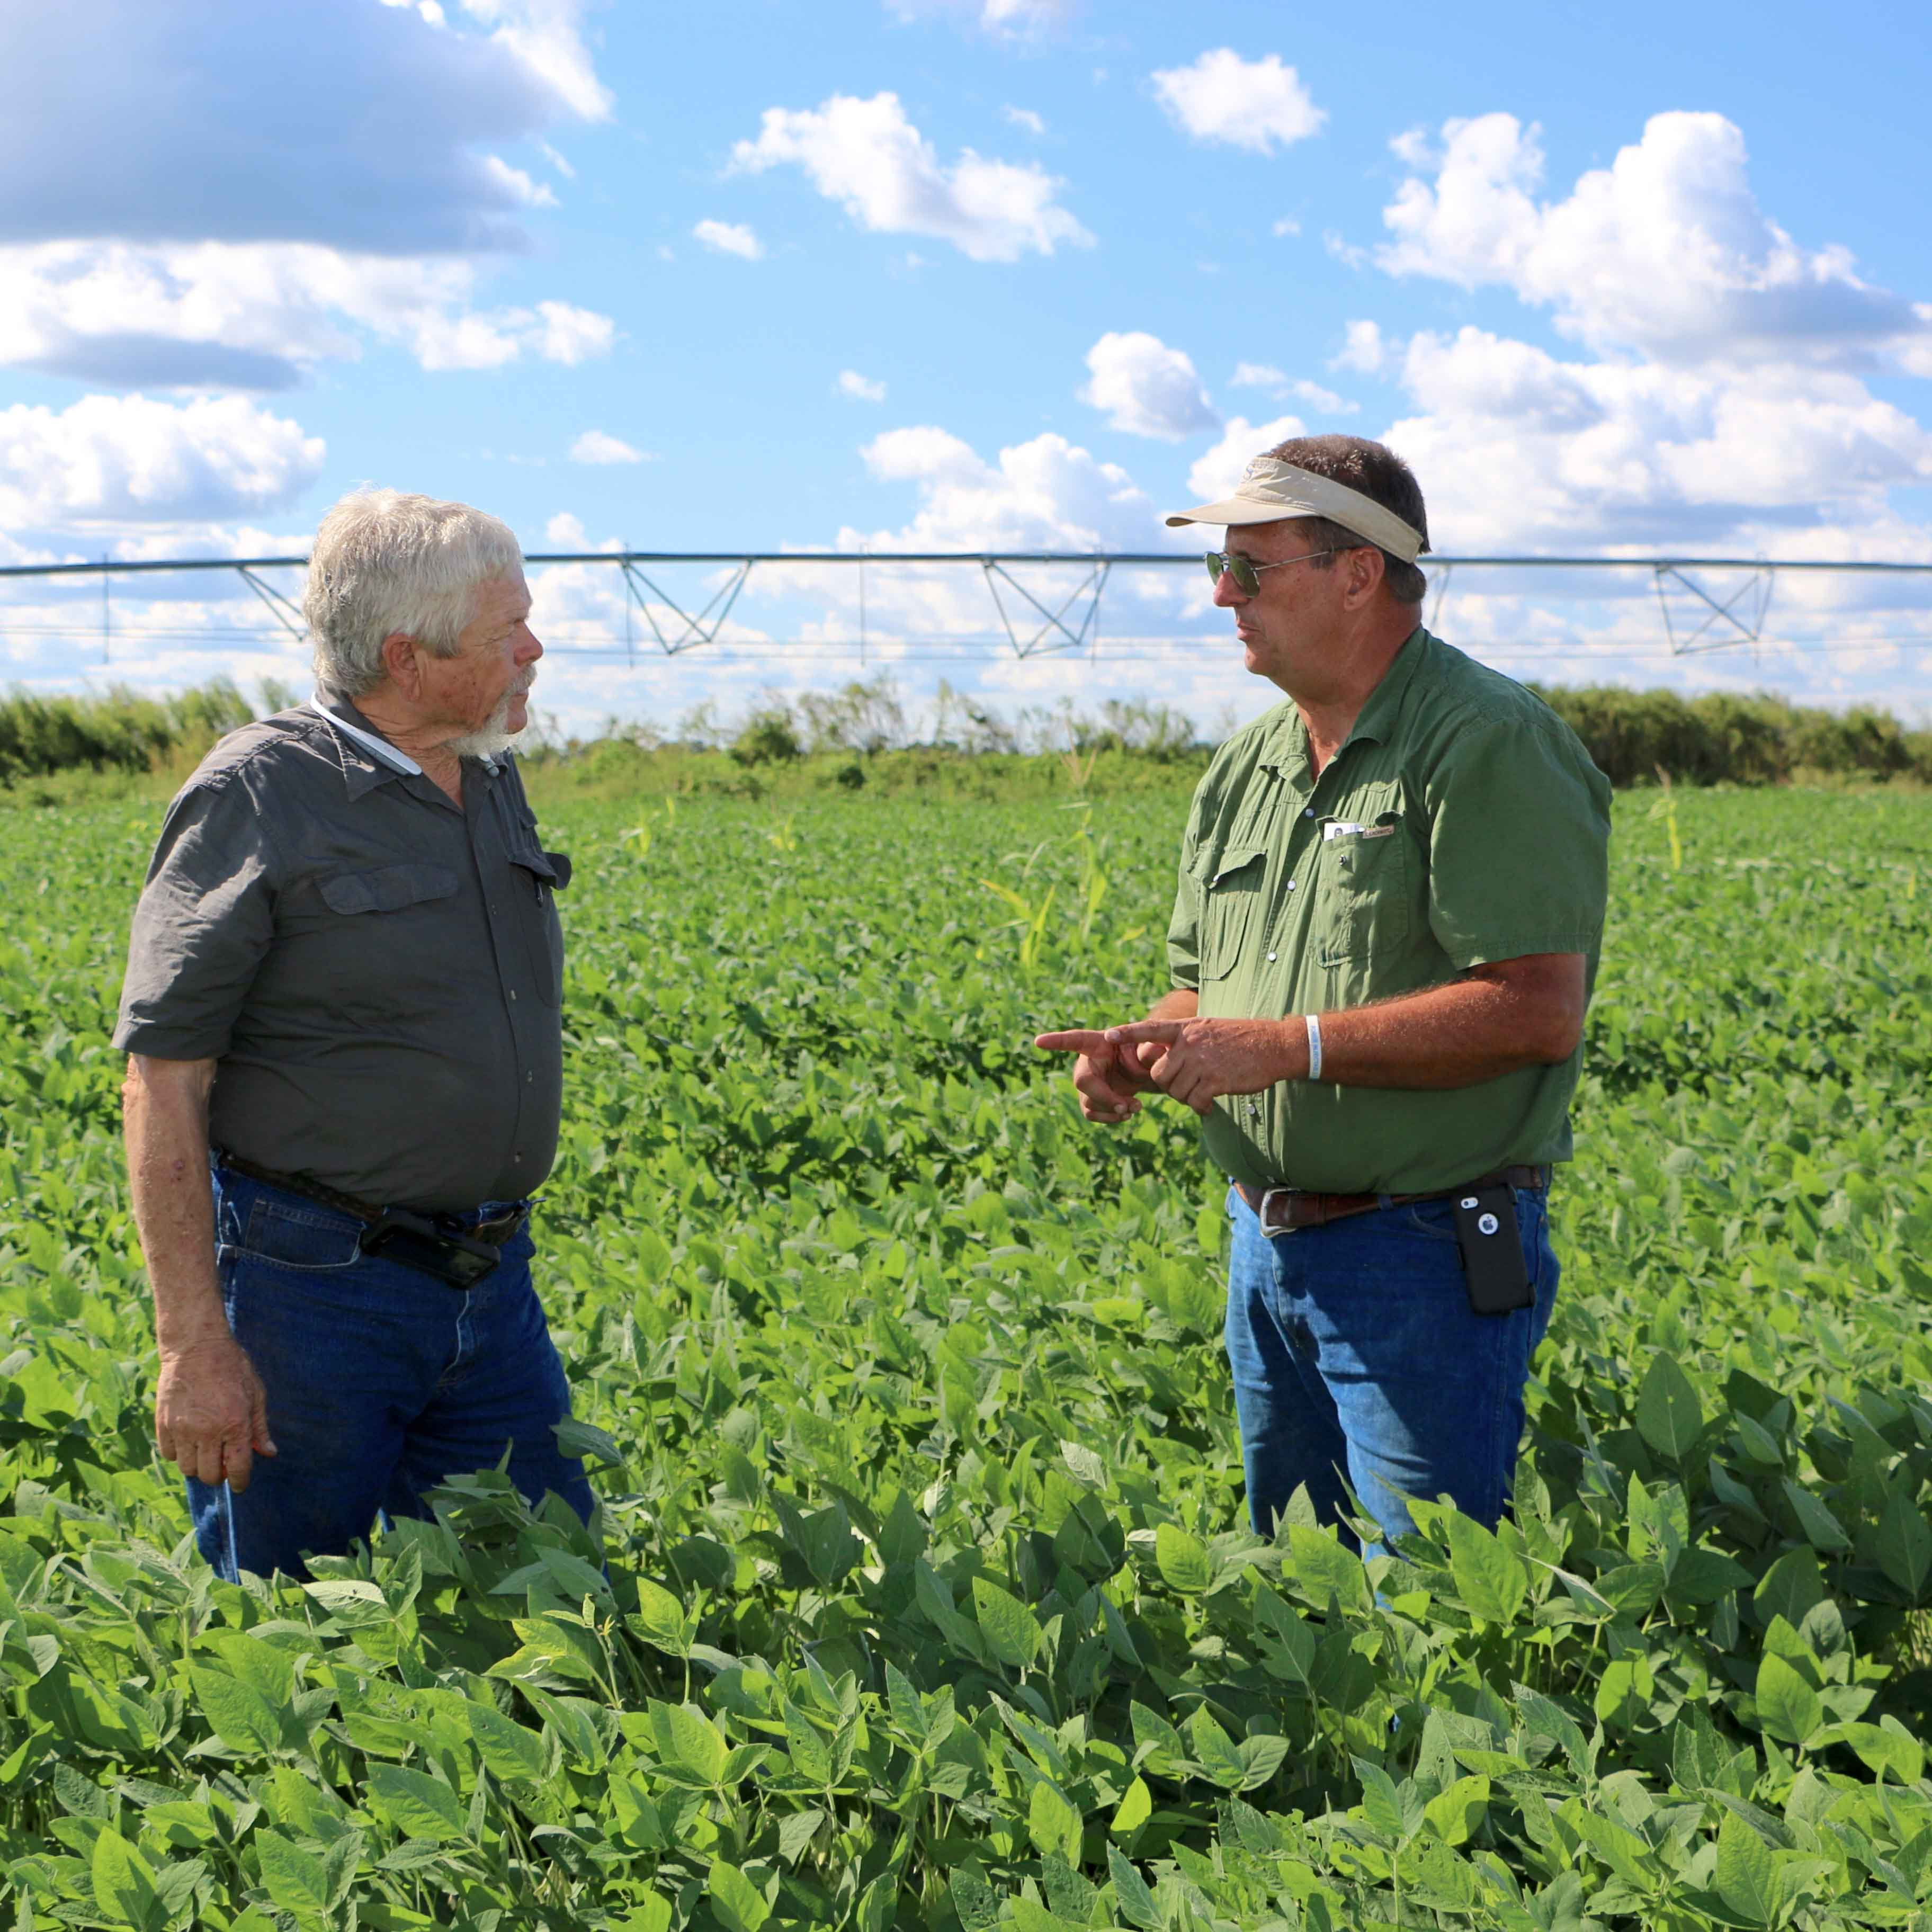 Georgia Farmer of the Year John McCormick examines a soy bean plant with Screven County Extension coordinator Ray Hicks. Hicks and McCormick have worked together for more than 20 years.